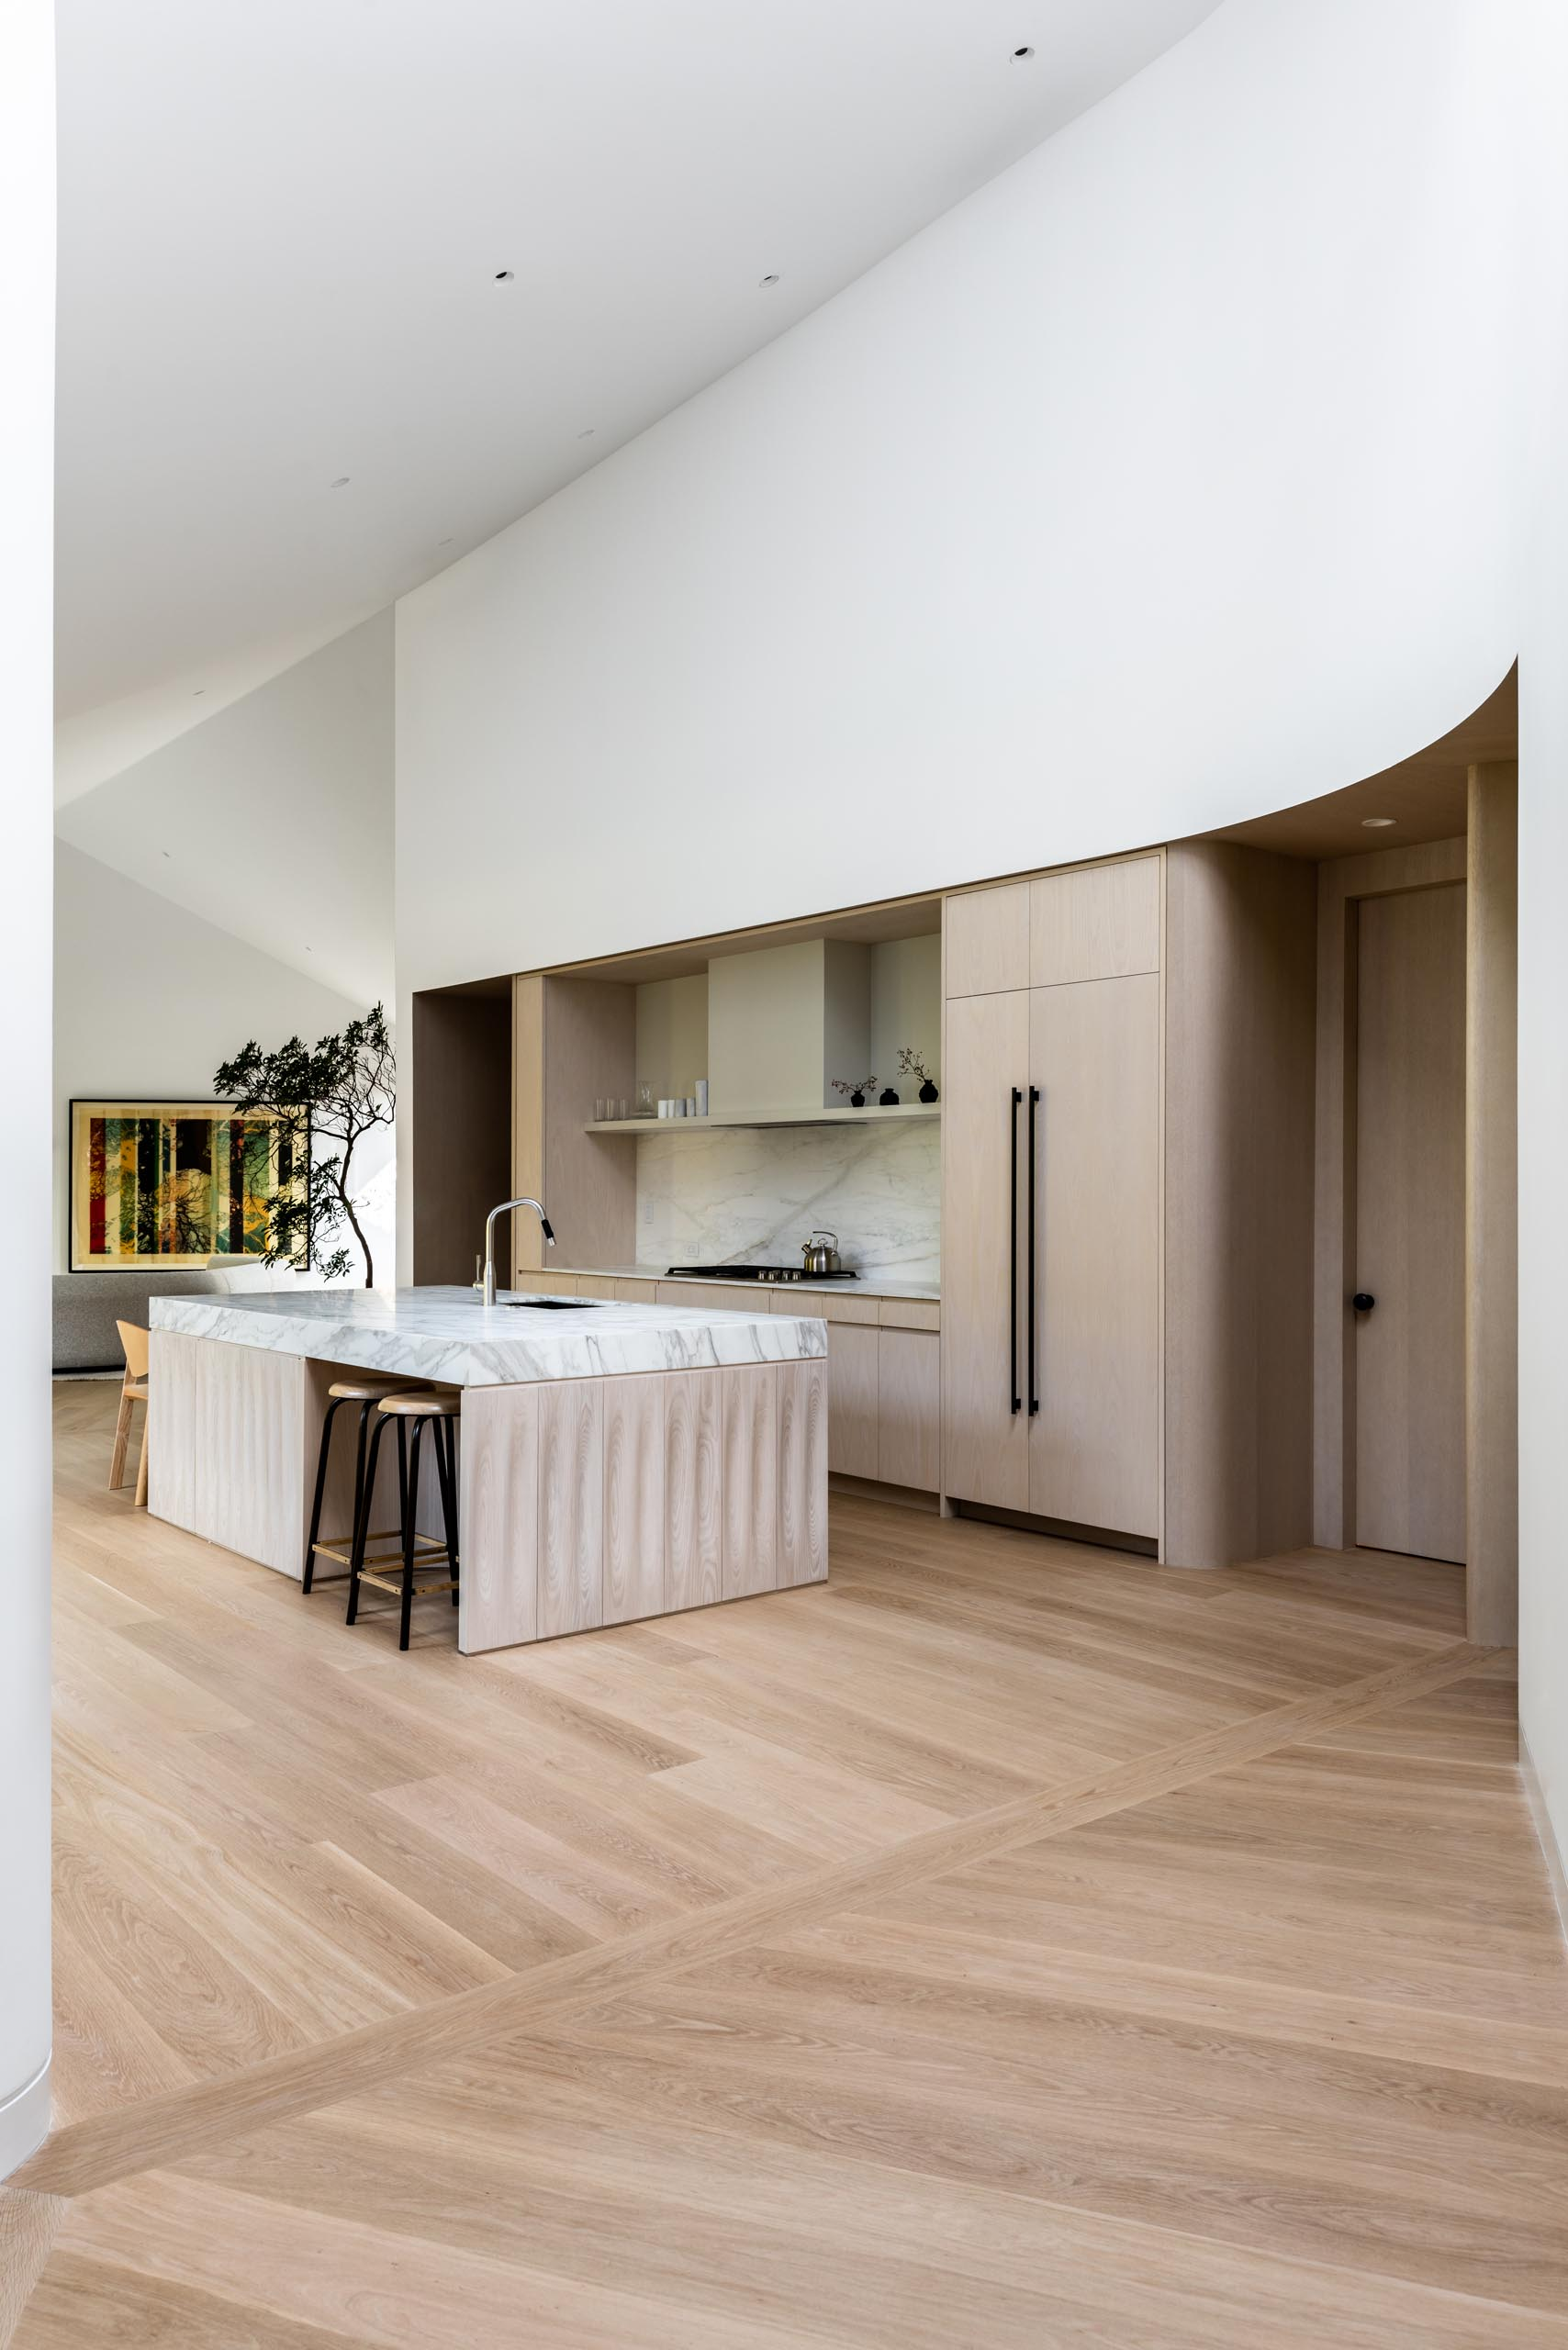 Not only does the kitchen have minimalist wood cabinets with black hardware, but the island has a thick countertop made from light marble.